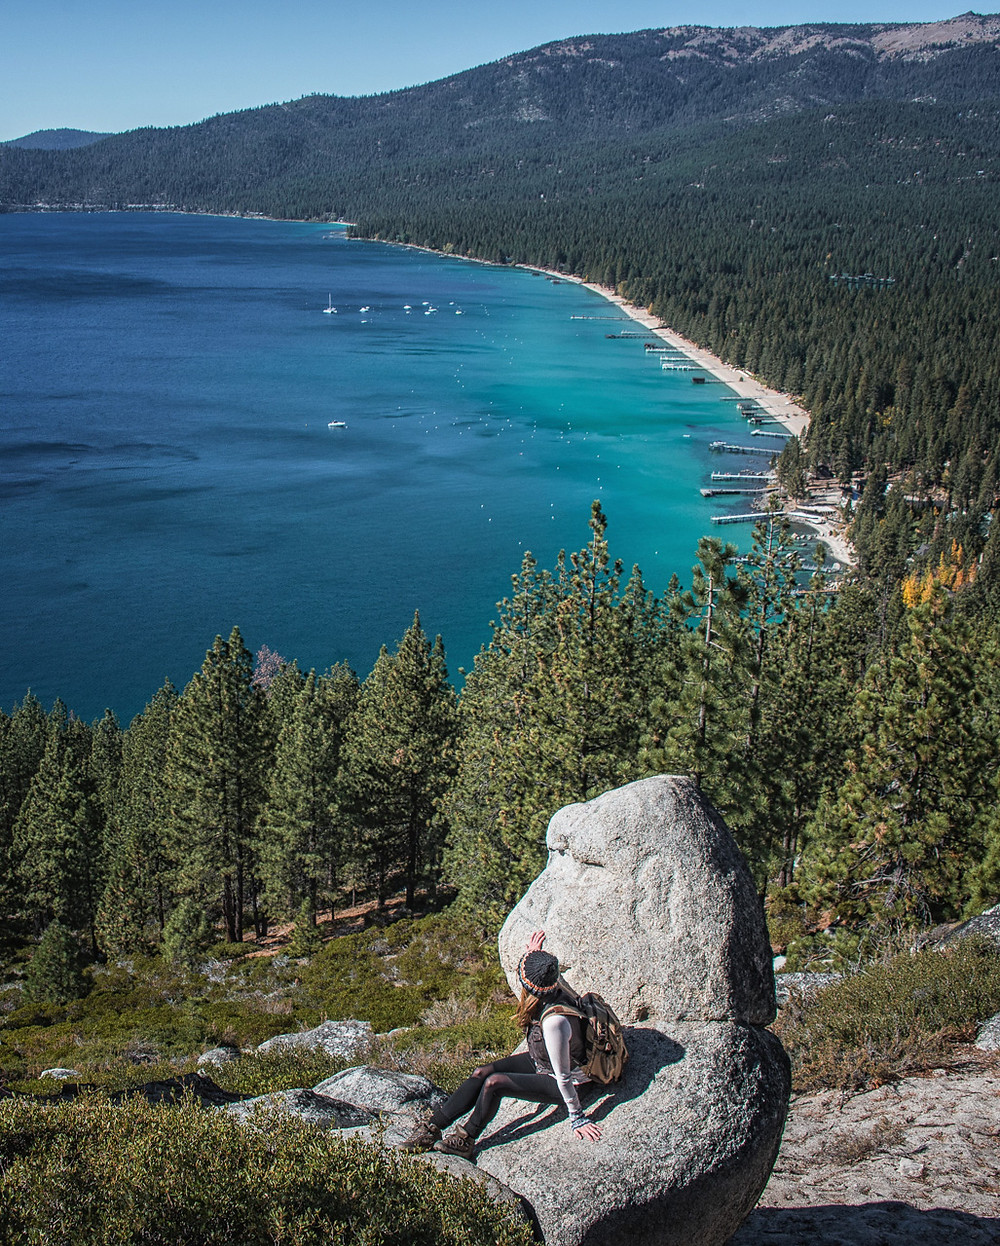 Views at Monkey Rock in Lake Tahoe